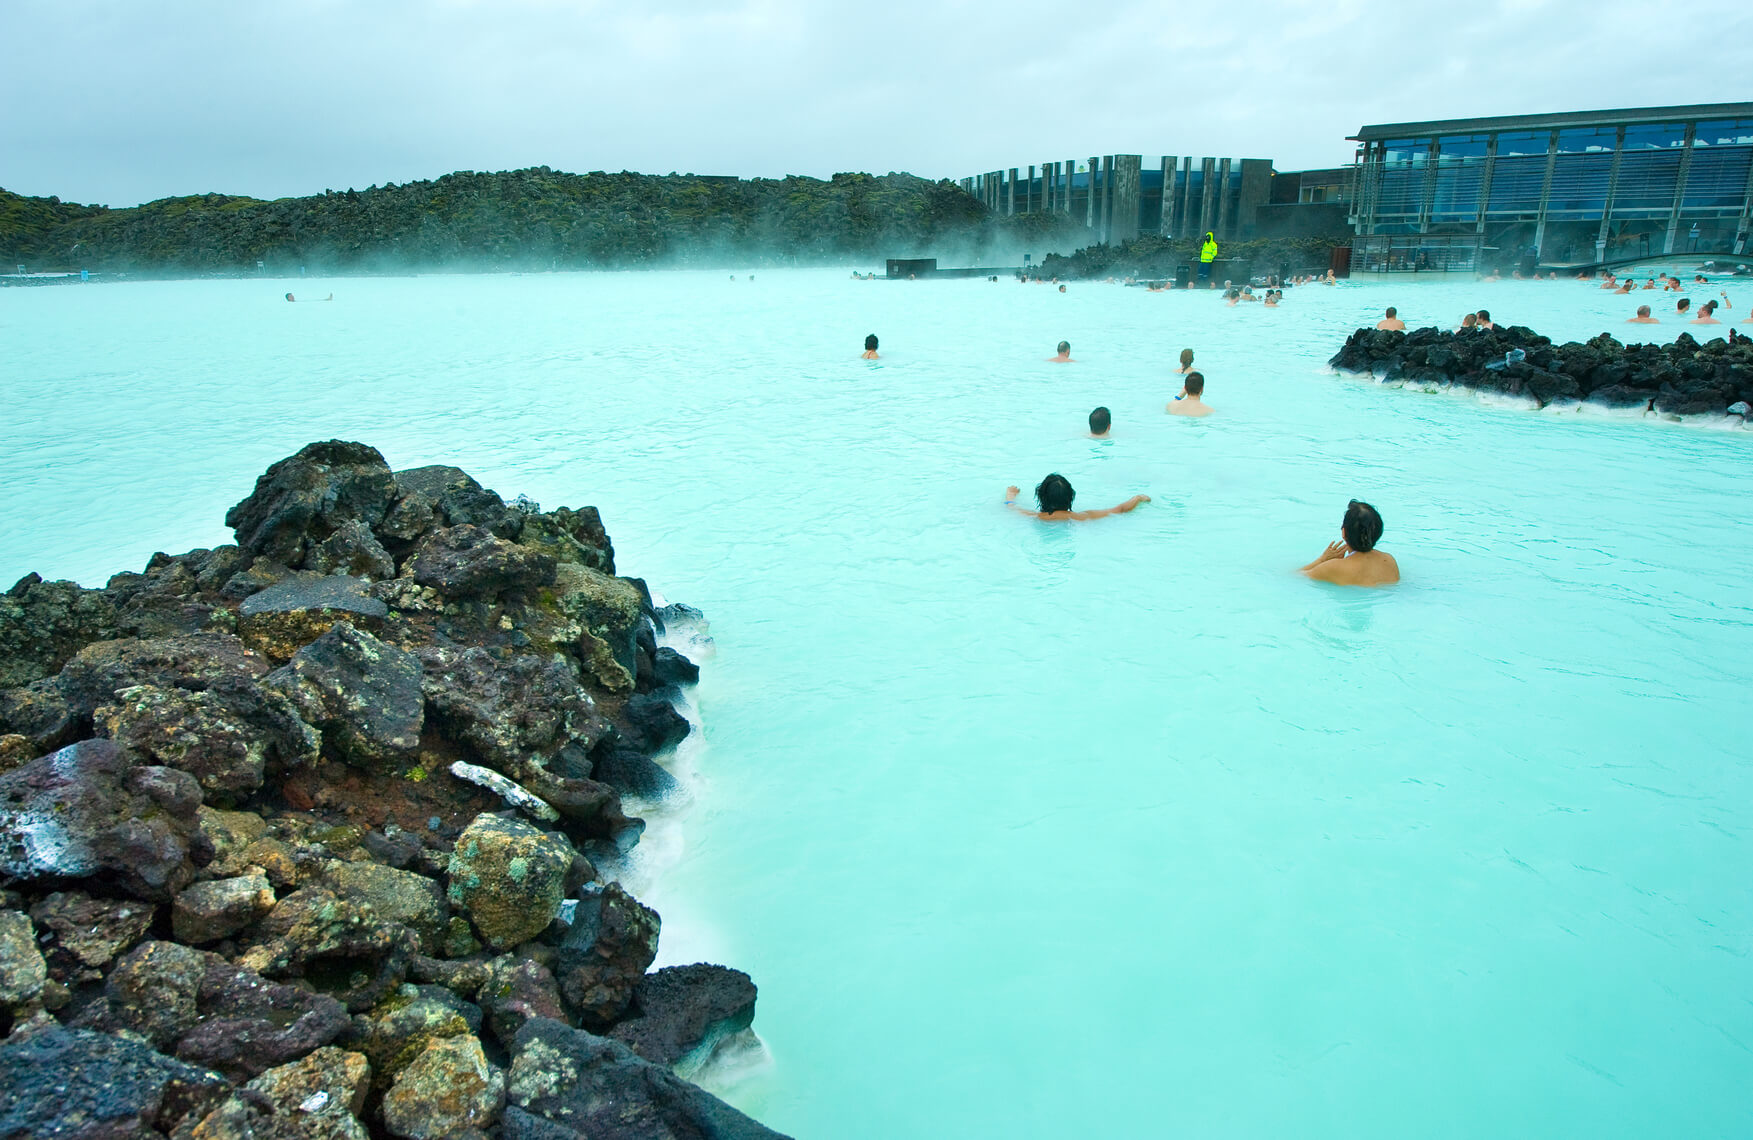 Non-stop from London, UK to Reykjavik, Iceland for only £20 roundtrip (& vice versa for €20) (members only)